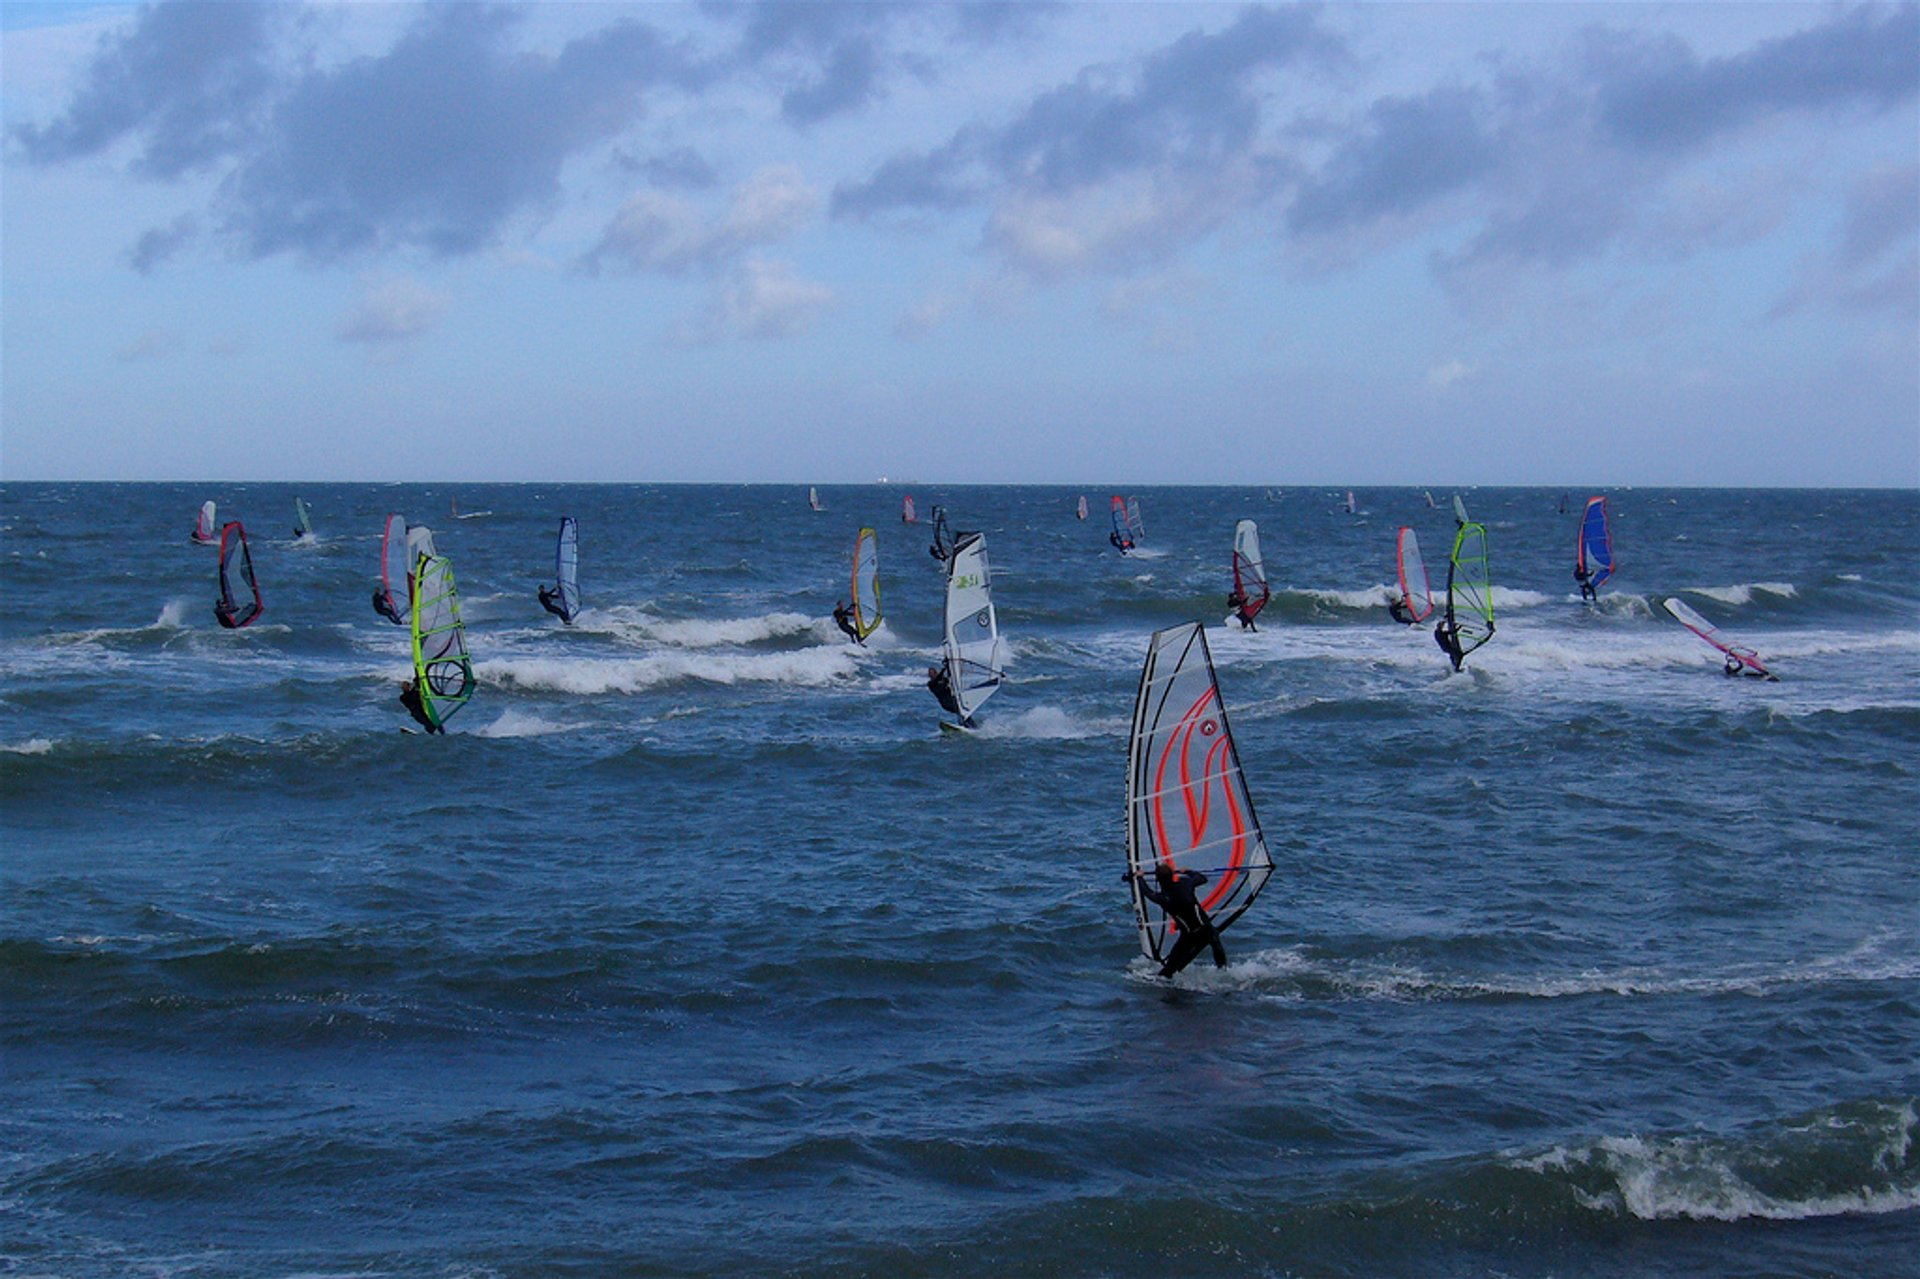 Best time for Kitesurfing and Windsurfing in Denmark 2020